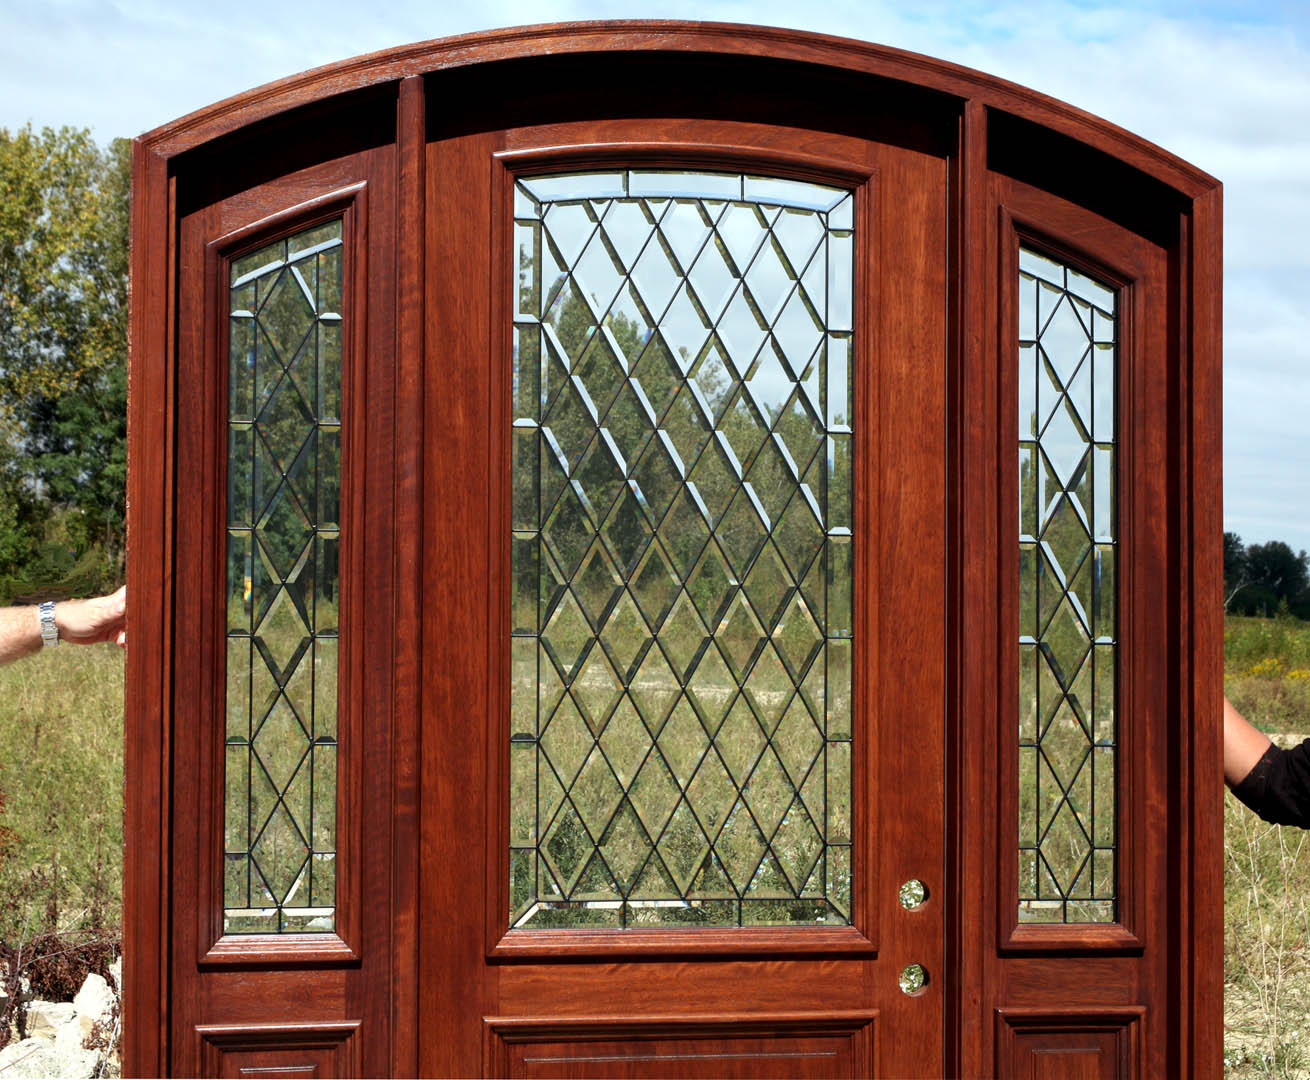 1080 #792F1D Arch Doors Arched Top Doors Exterior Arched Doors image Arched Wood Entry Doors 40831310